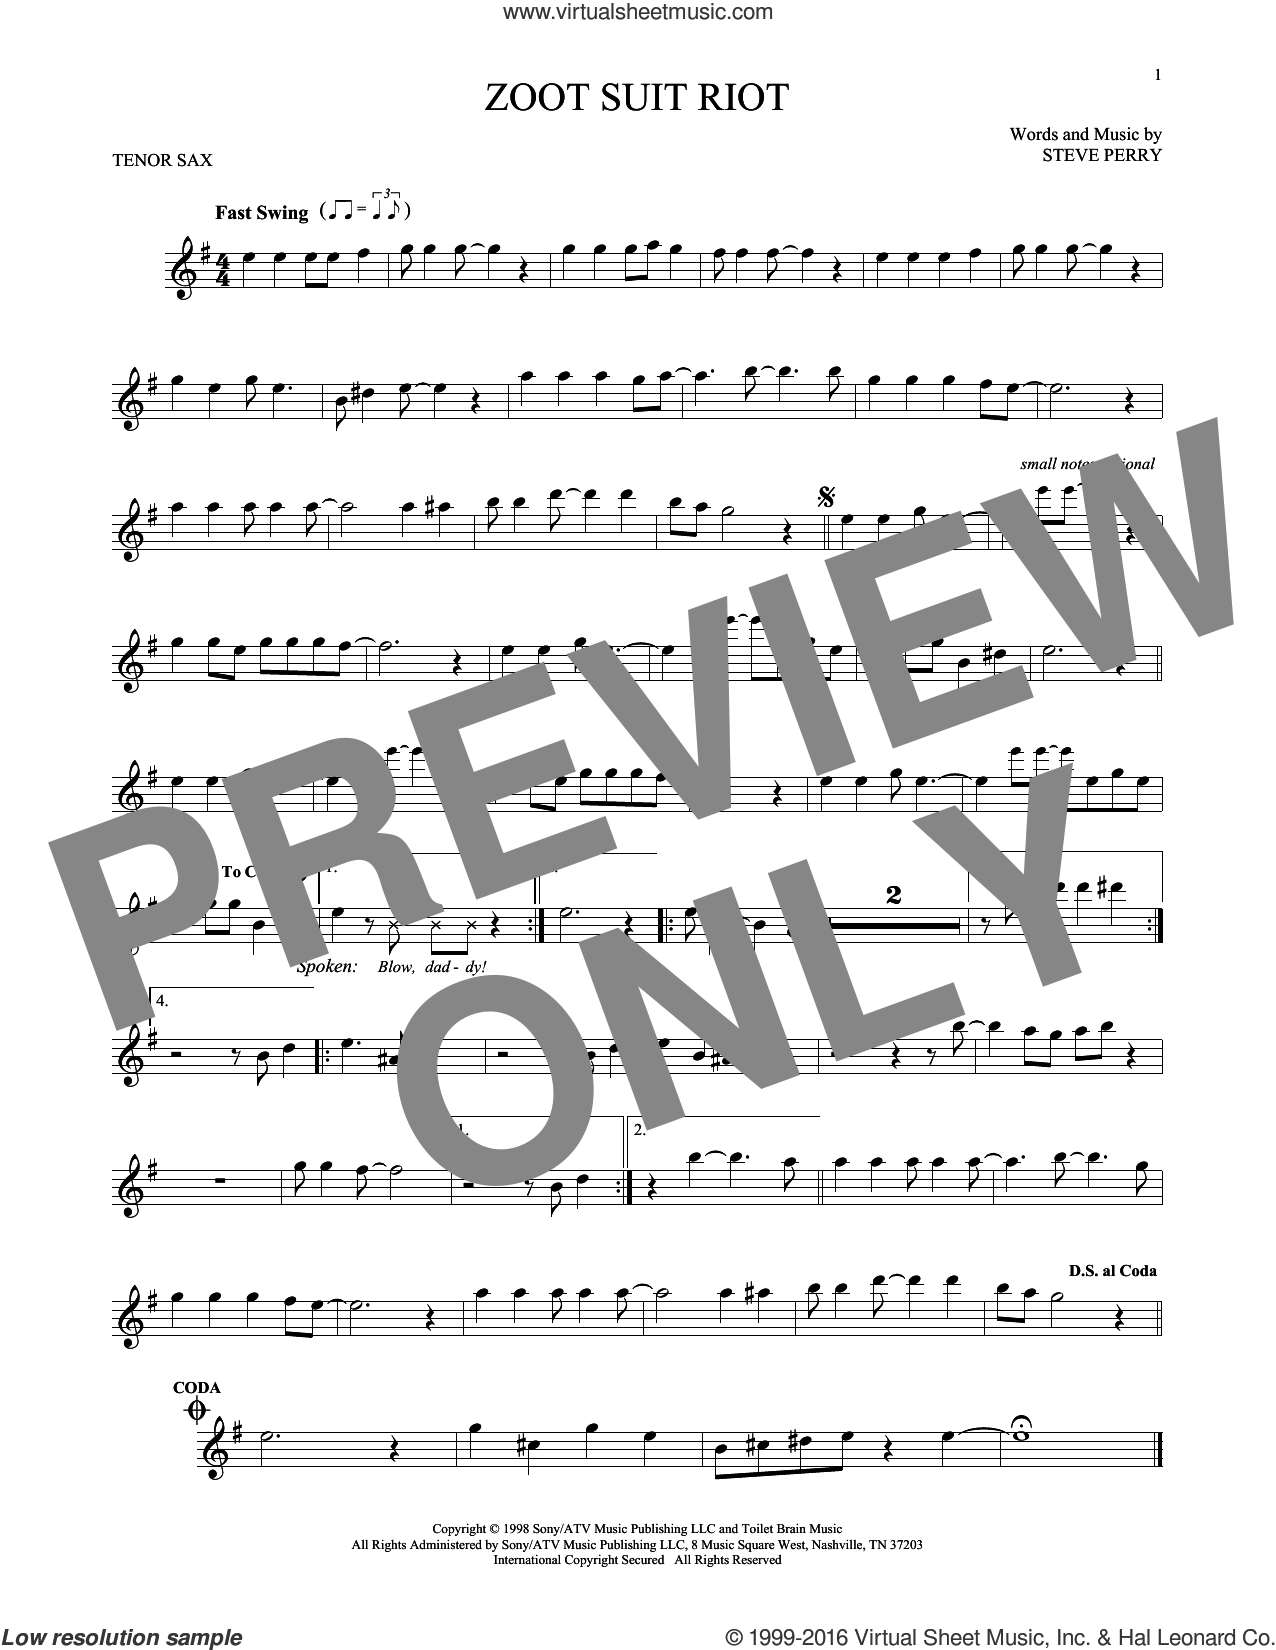 Zoot Suit Riot sheet music for tenor saxophone solo by Steve Perry. Score Image Preview.